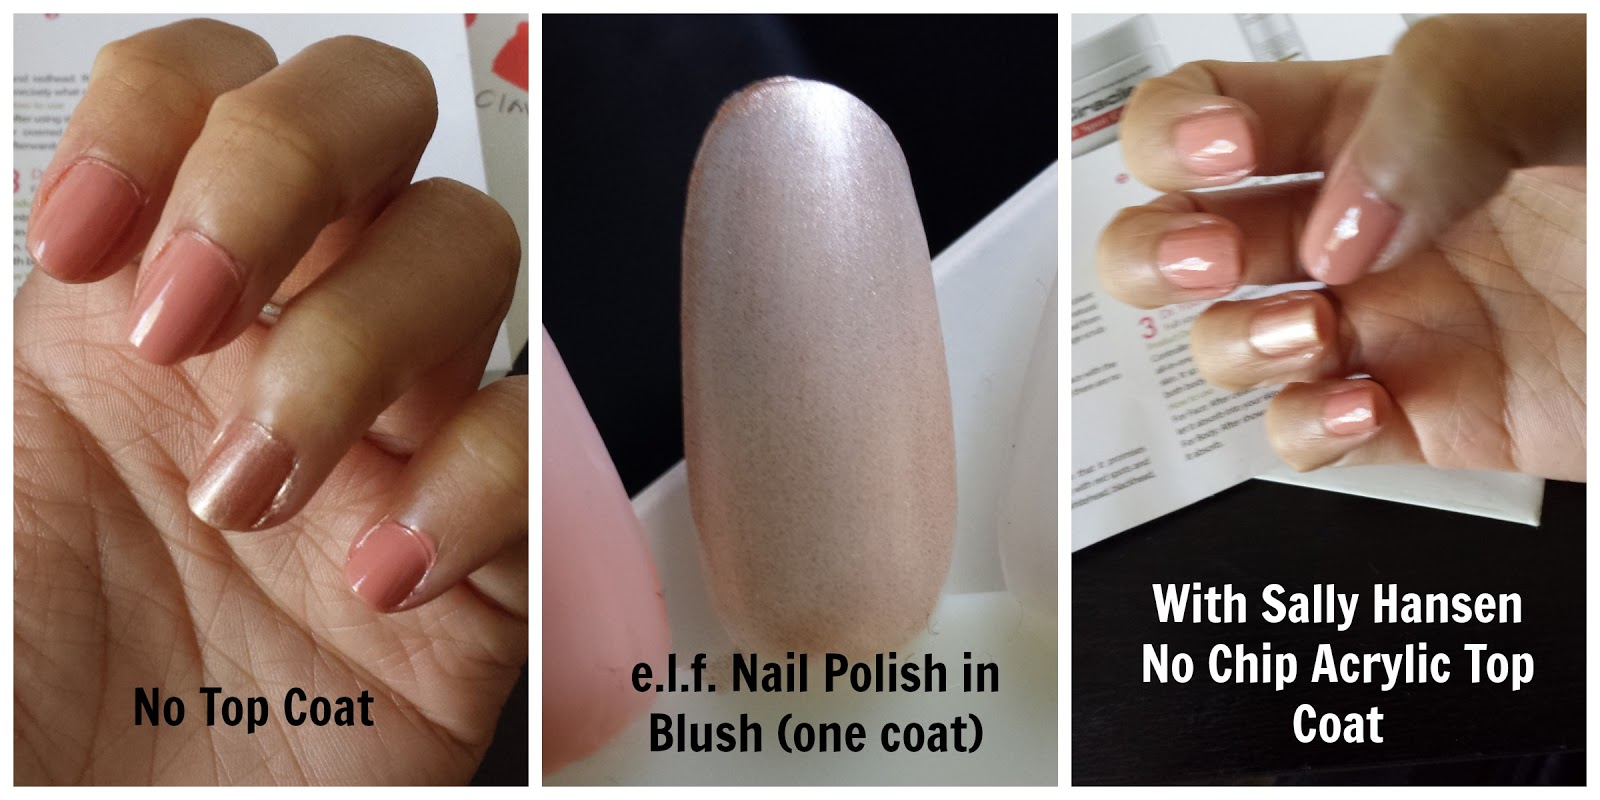 elf nail polish in prissy chrissy and blush